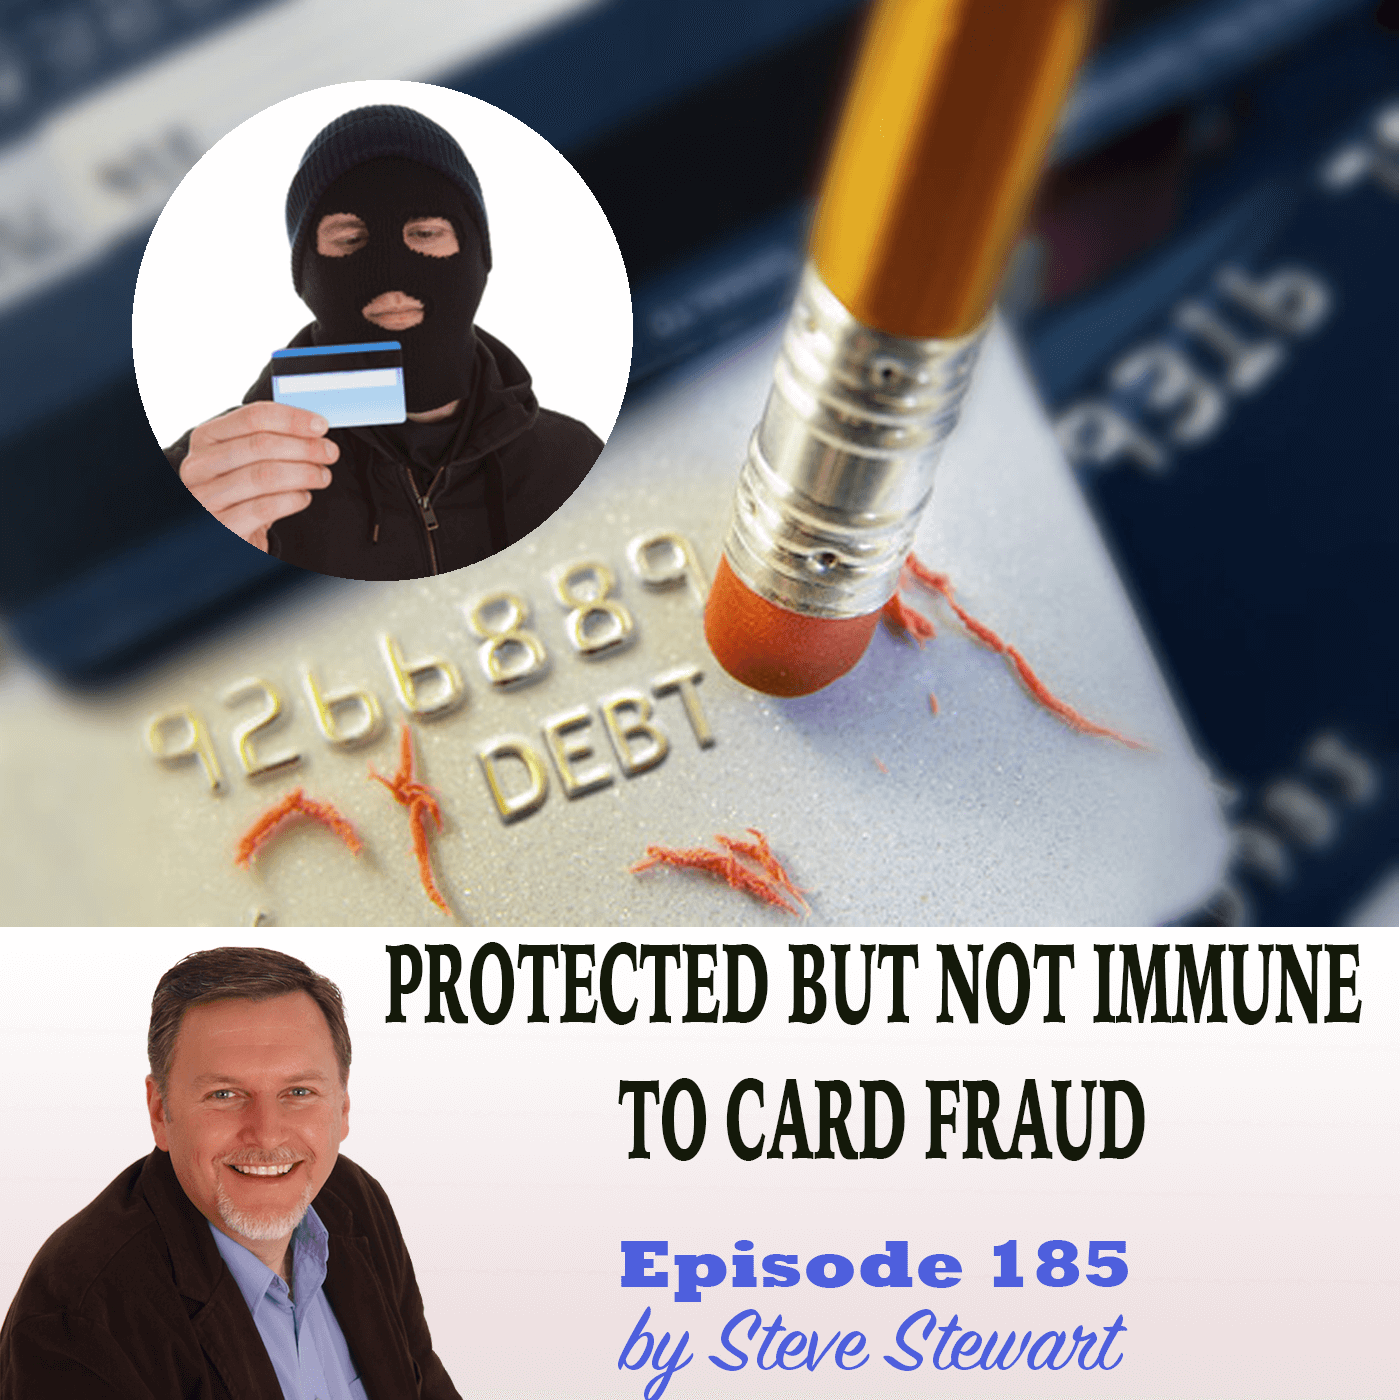 Protected but not Immune to Card Fraud